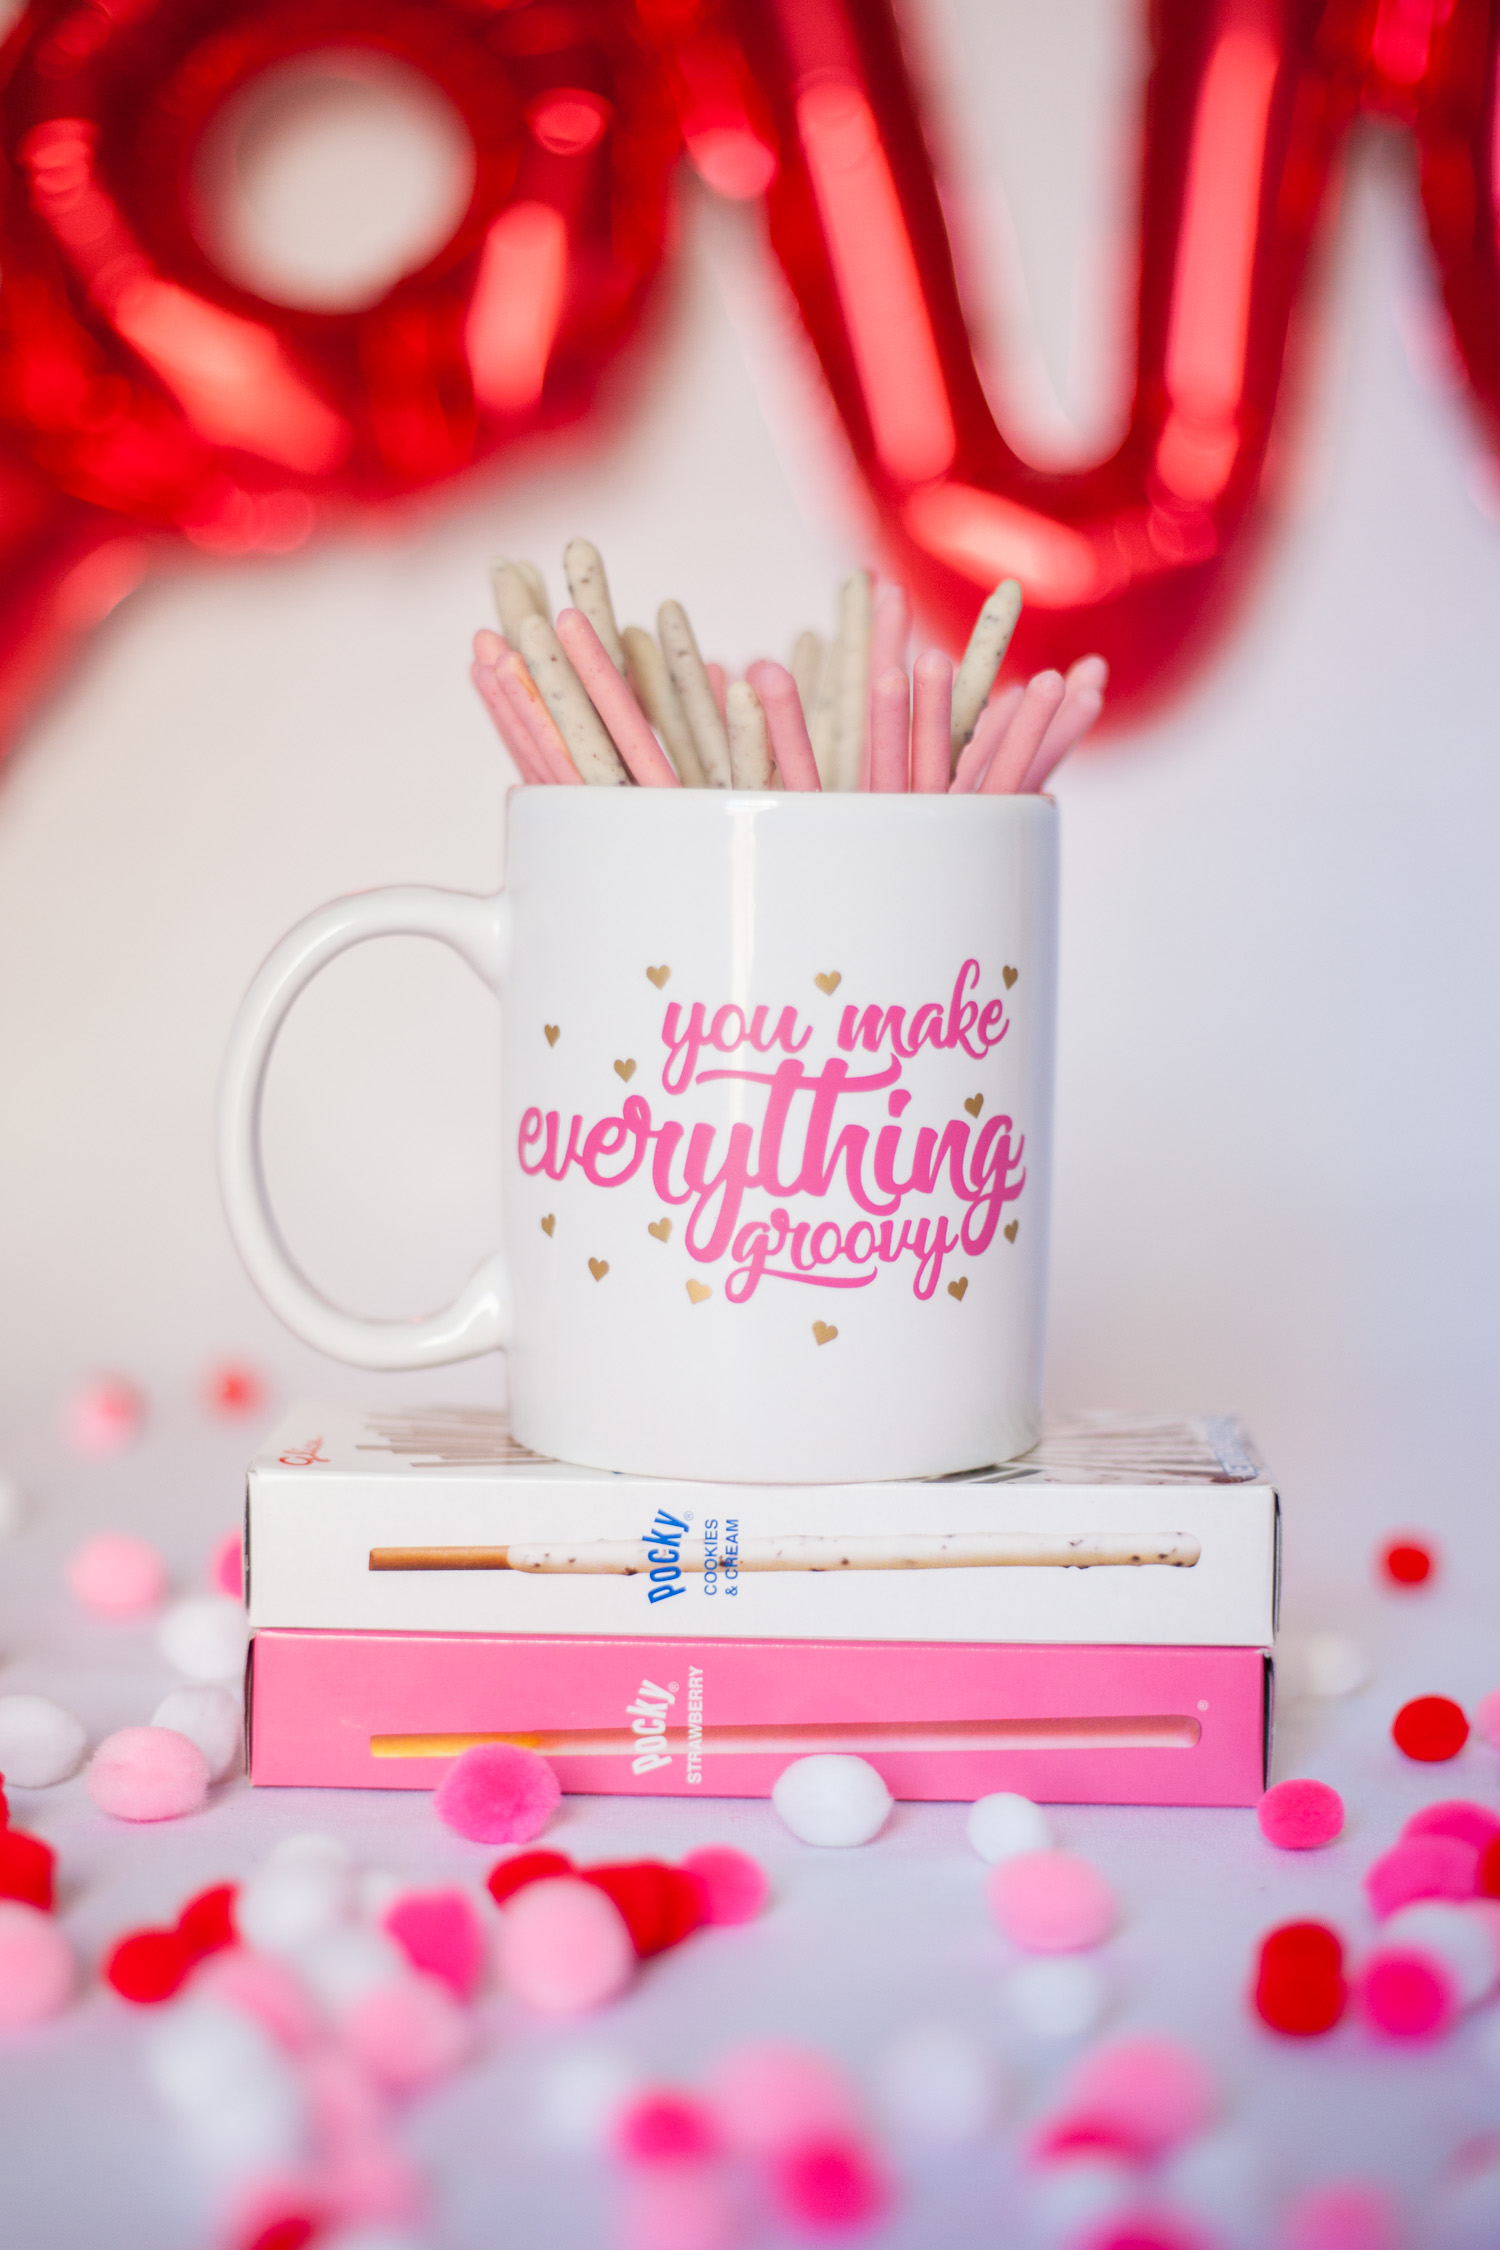 Valentine's Mug Tutorial Using Cricut or Silhouette with FREE SVG cut files